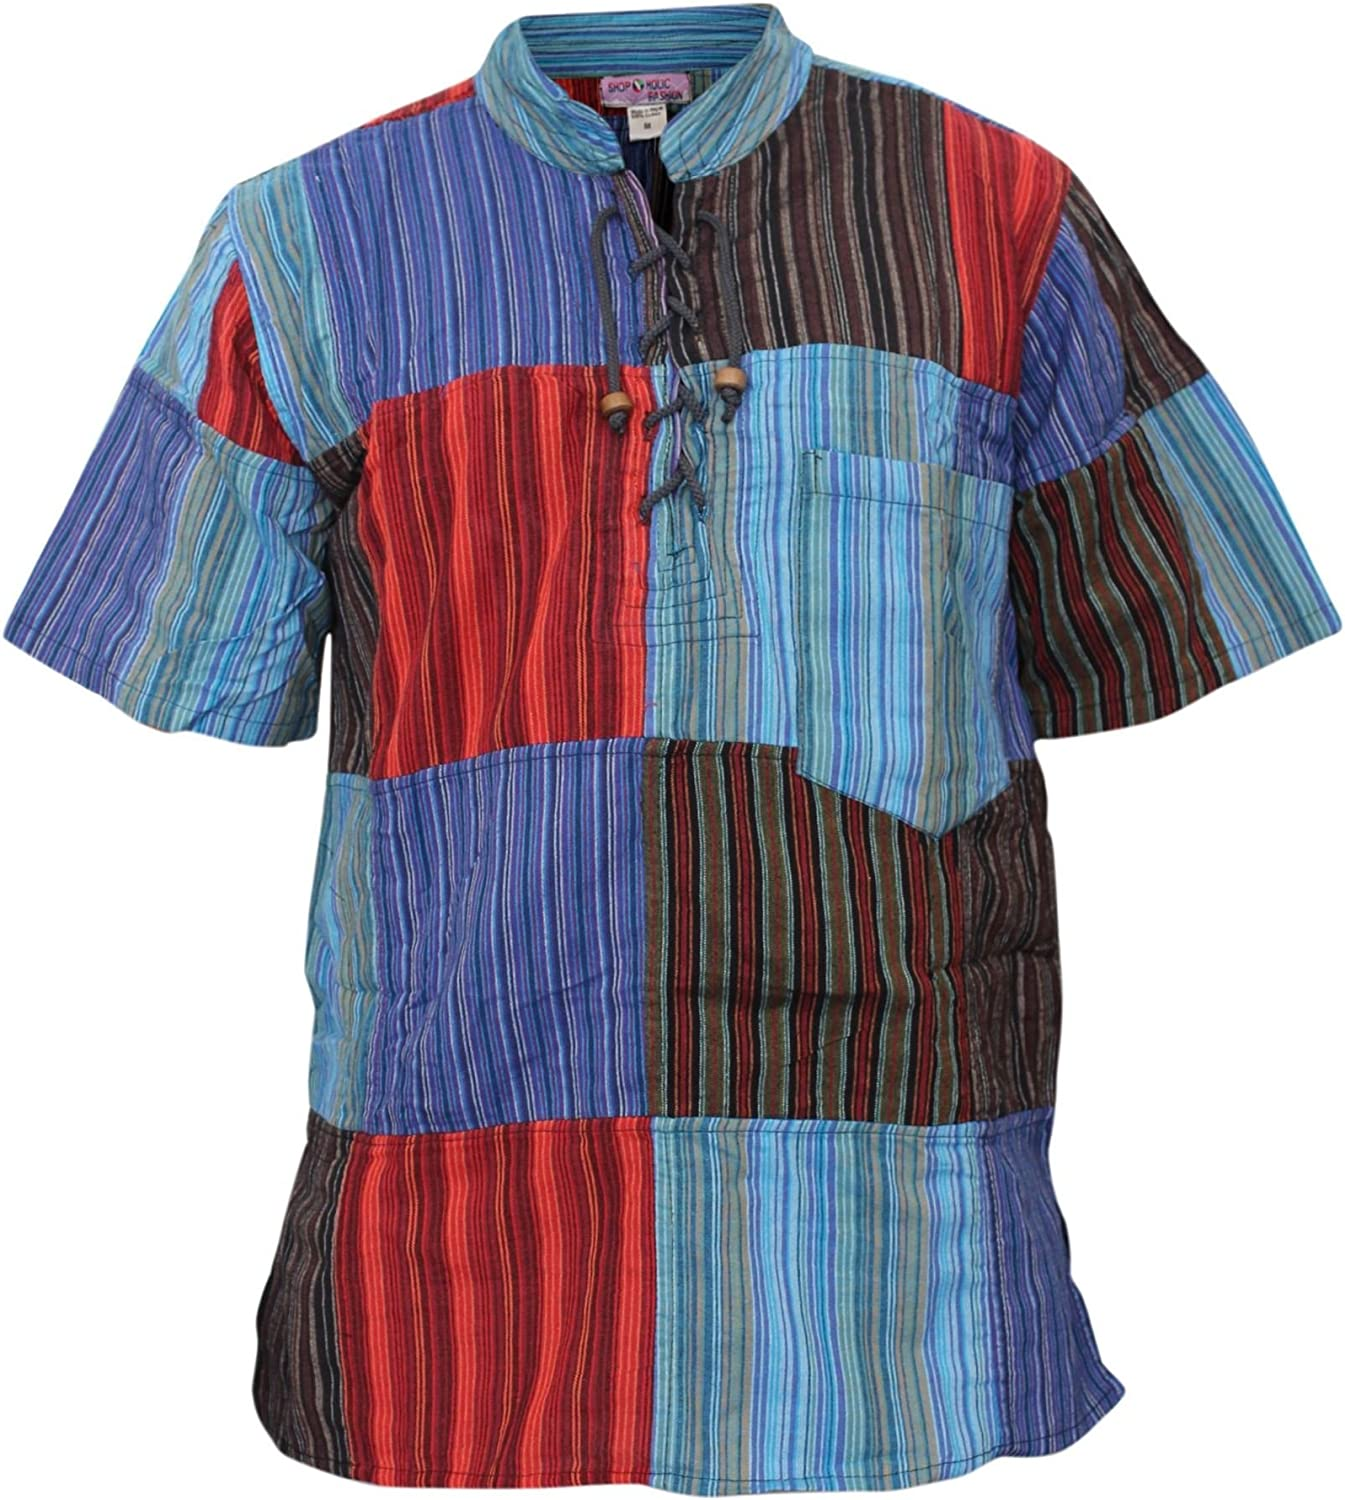 60s , 70s Hippie Clothes for Men Shopoholic Fashion Mens Half Sleeve Patch Hippie Grandad Shirt $27.99 AT vintagedancer.com